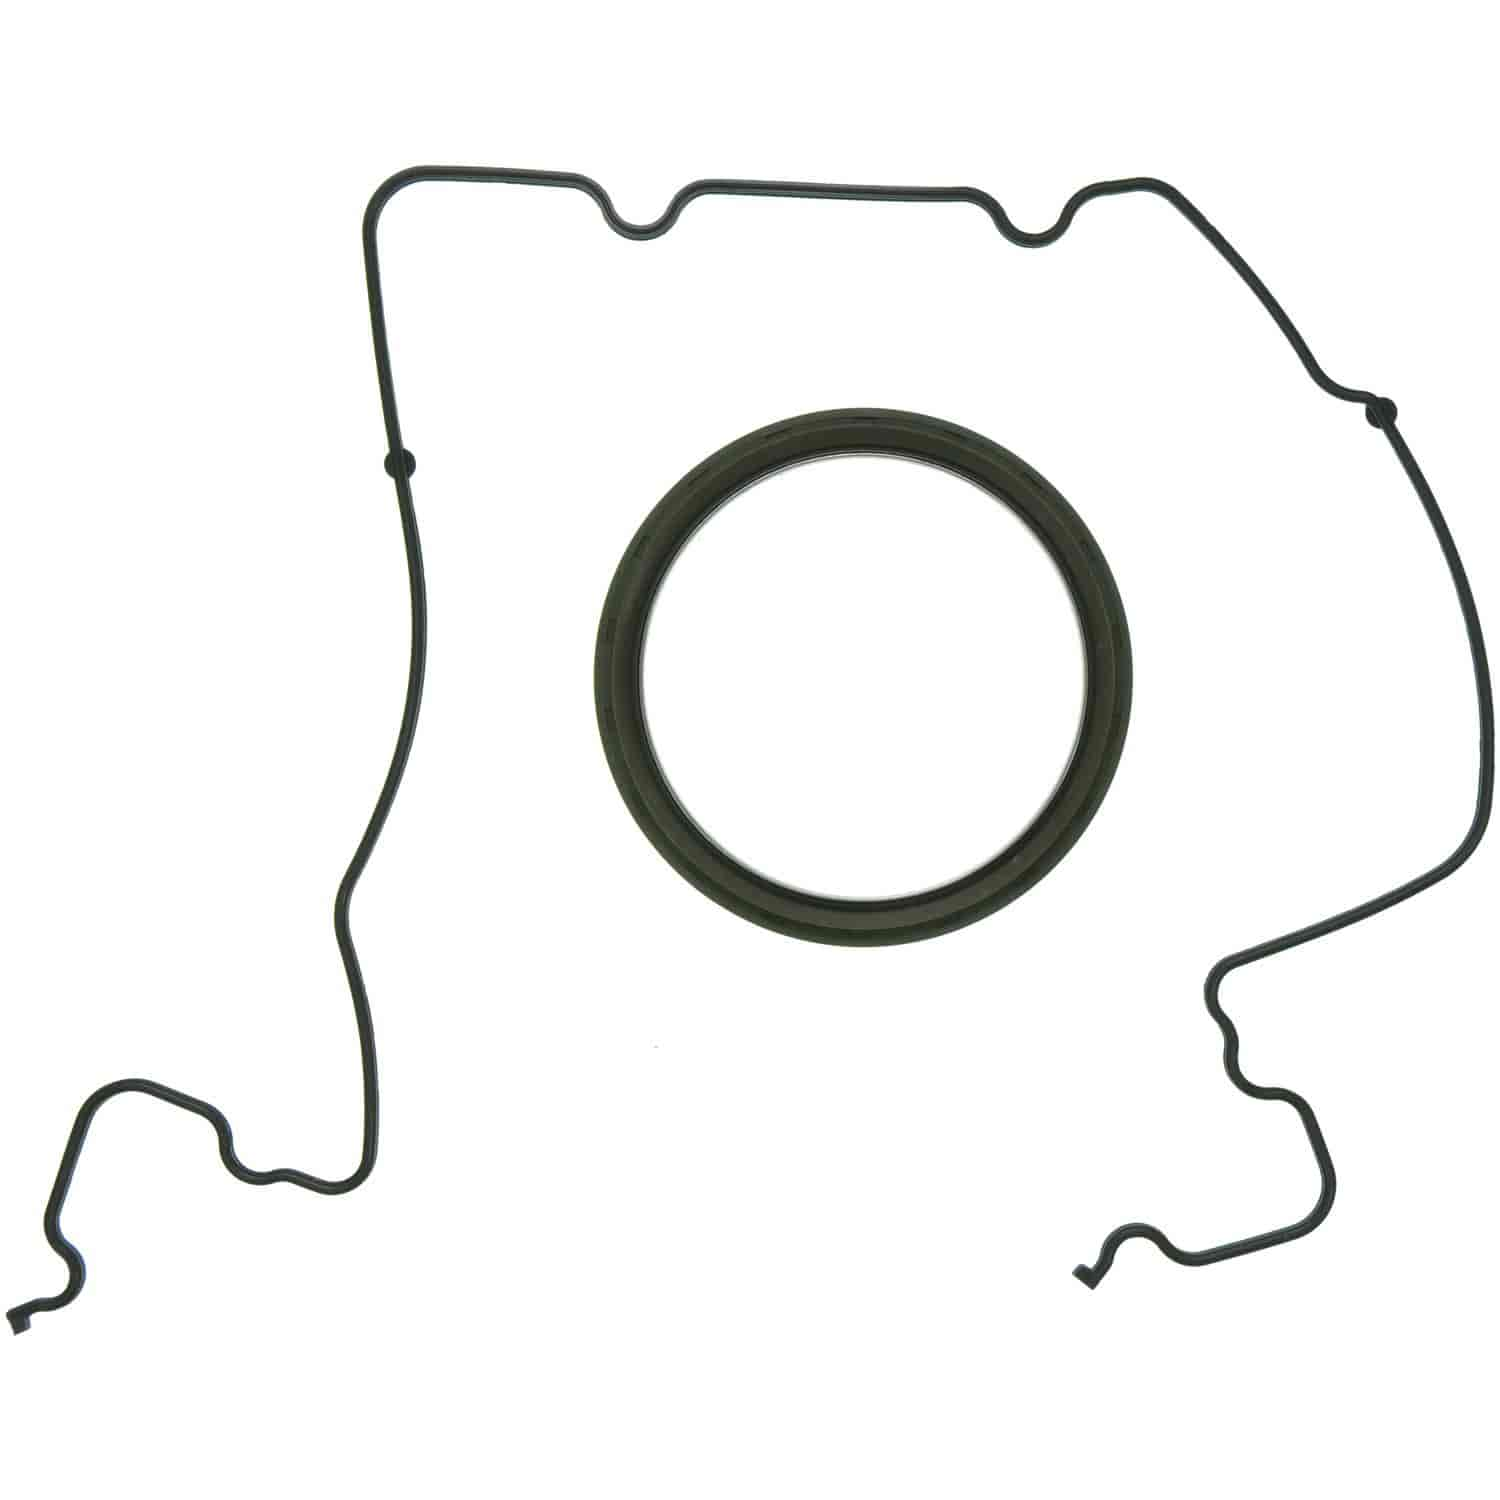 clevite mahle jv1684  rear main seal set 2003